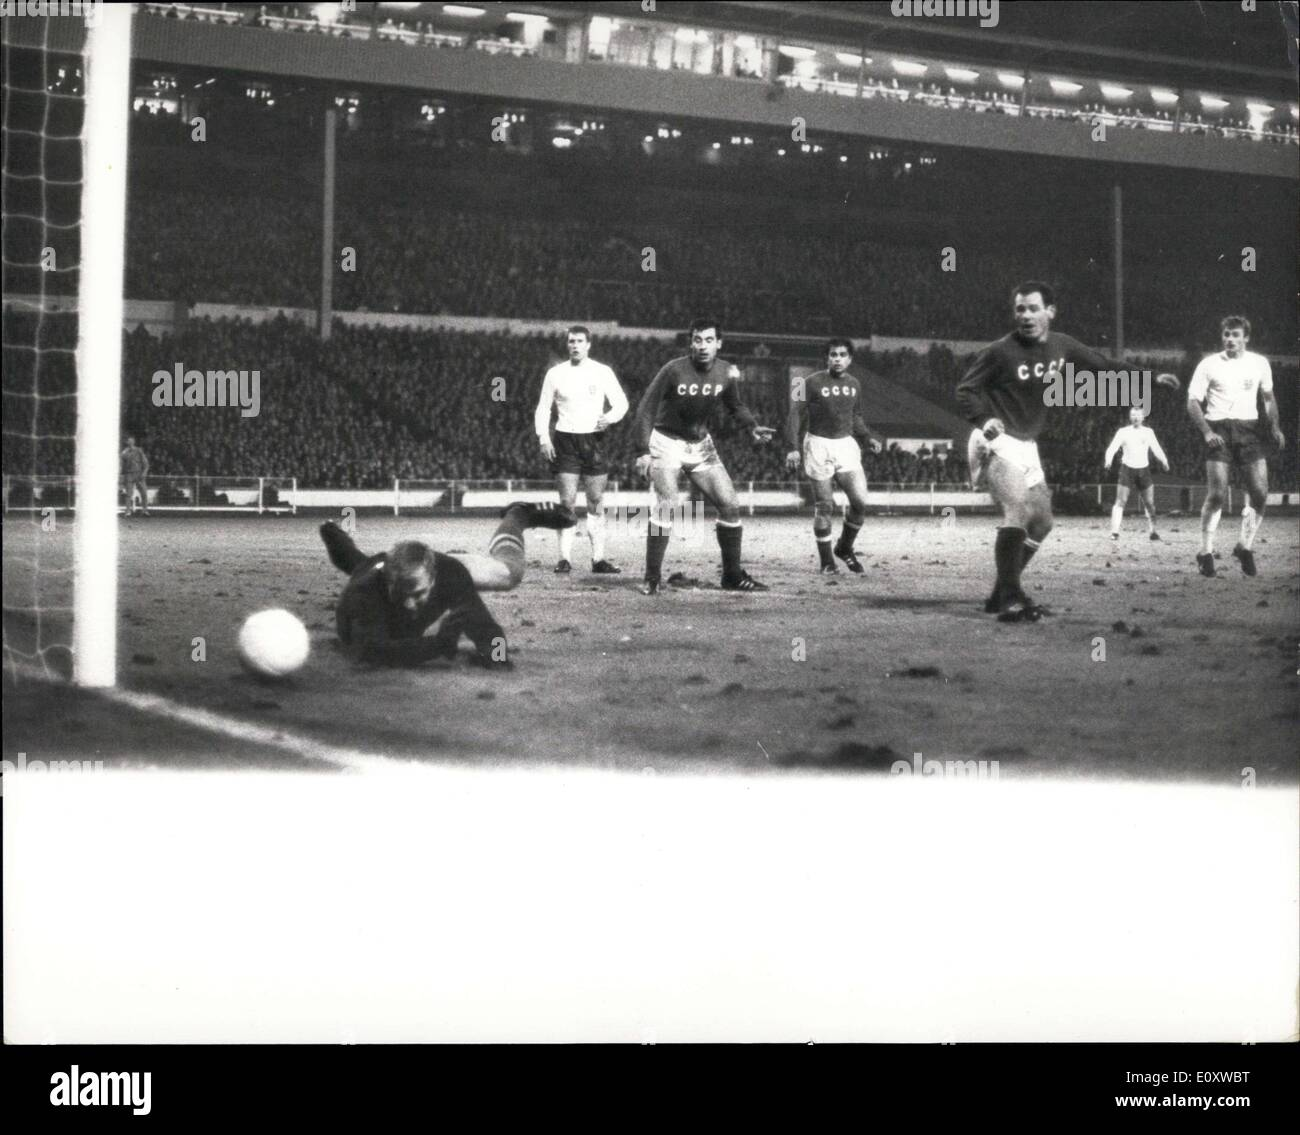 Dec. 07, 1967 - International Soccer at Wembley England Draw 2-3 with Russia: Photo Shows The Russian goalkeeper, Psenitchnikov, makes a fine save during last night's international football match between England and Russia, which ended in a 2-2 draw. - Stock Image